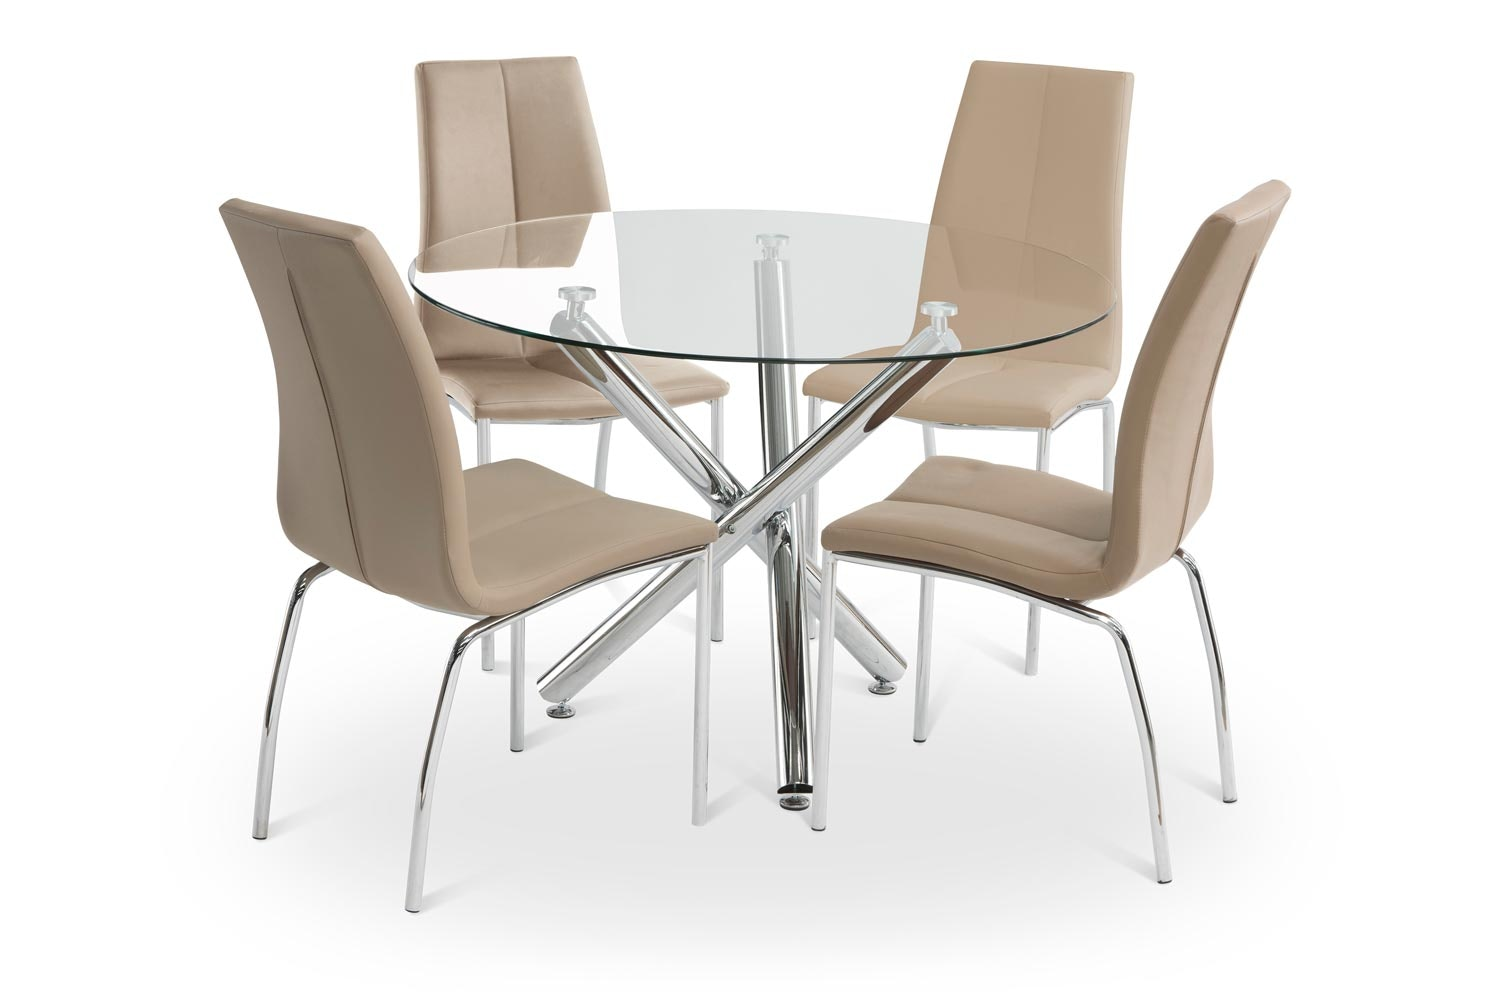 Pilar Dining Set With Stone Reno Chair | 5 Piece